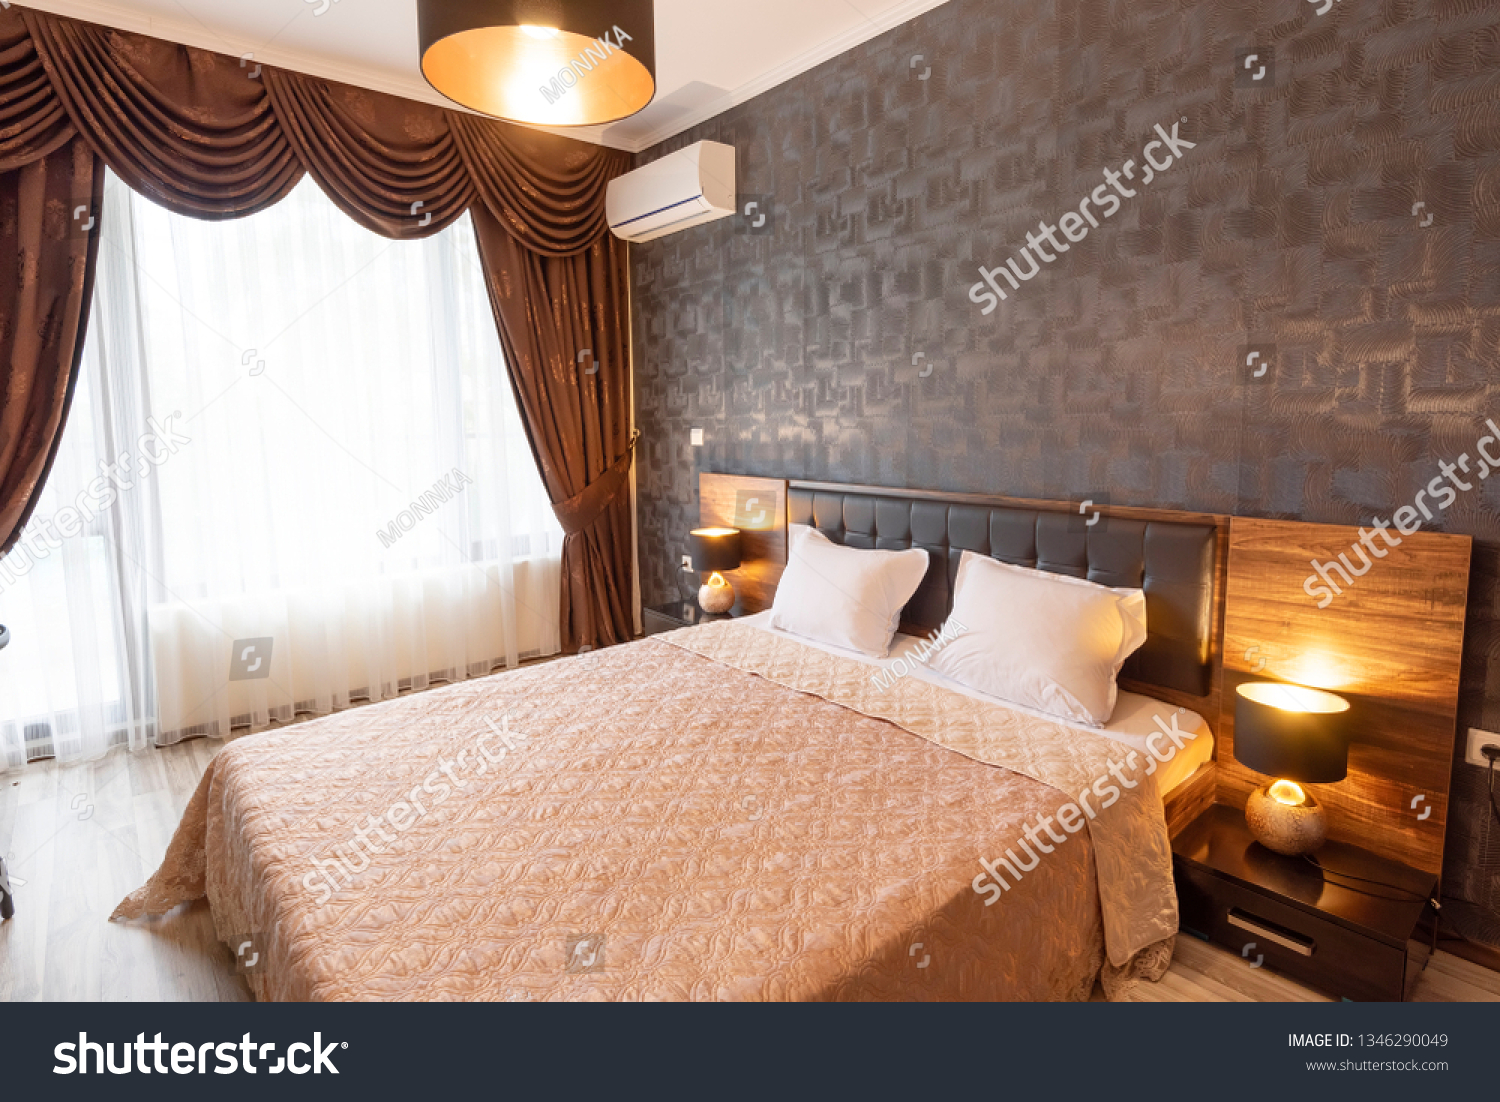 Classy Bedroom Interior Design Large Bed Stock Photo Edit Now 1346290049